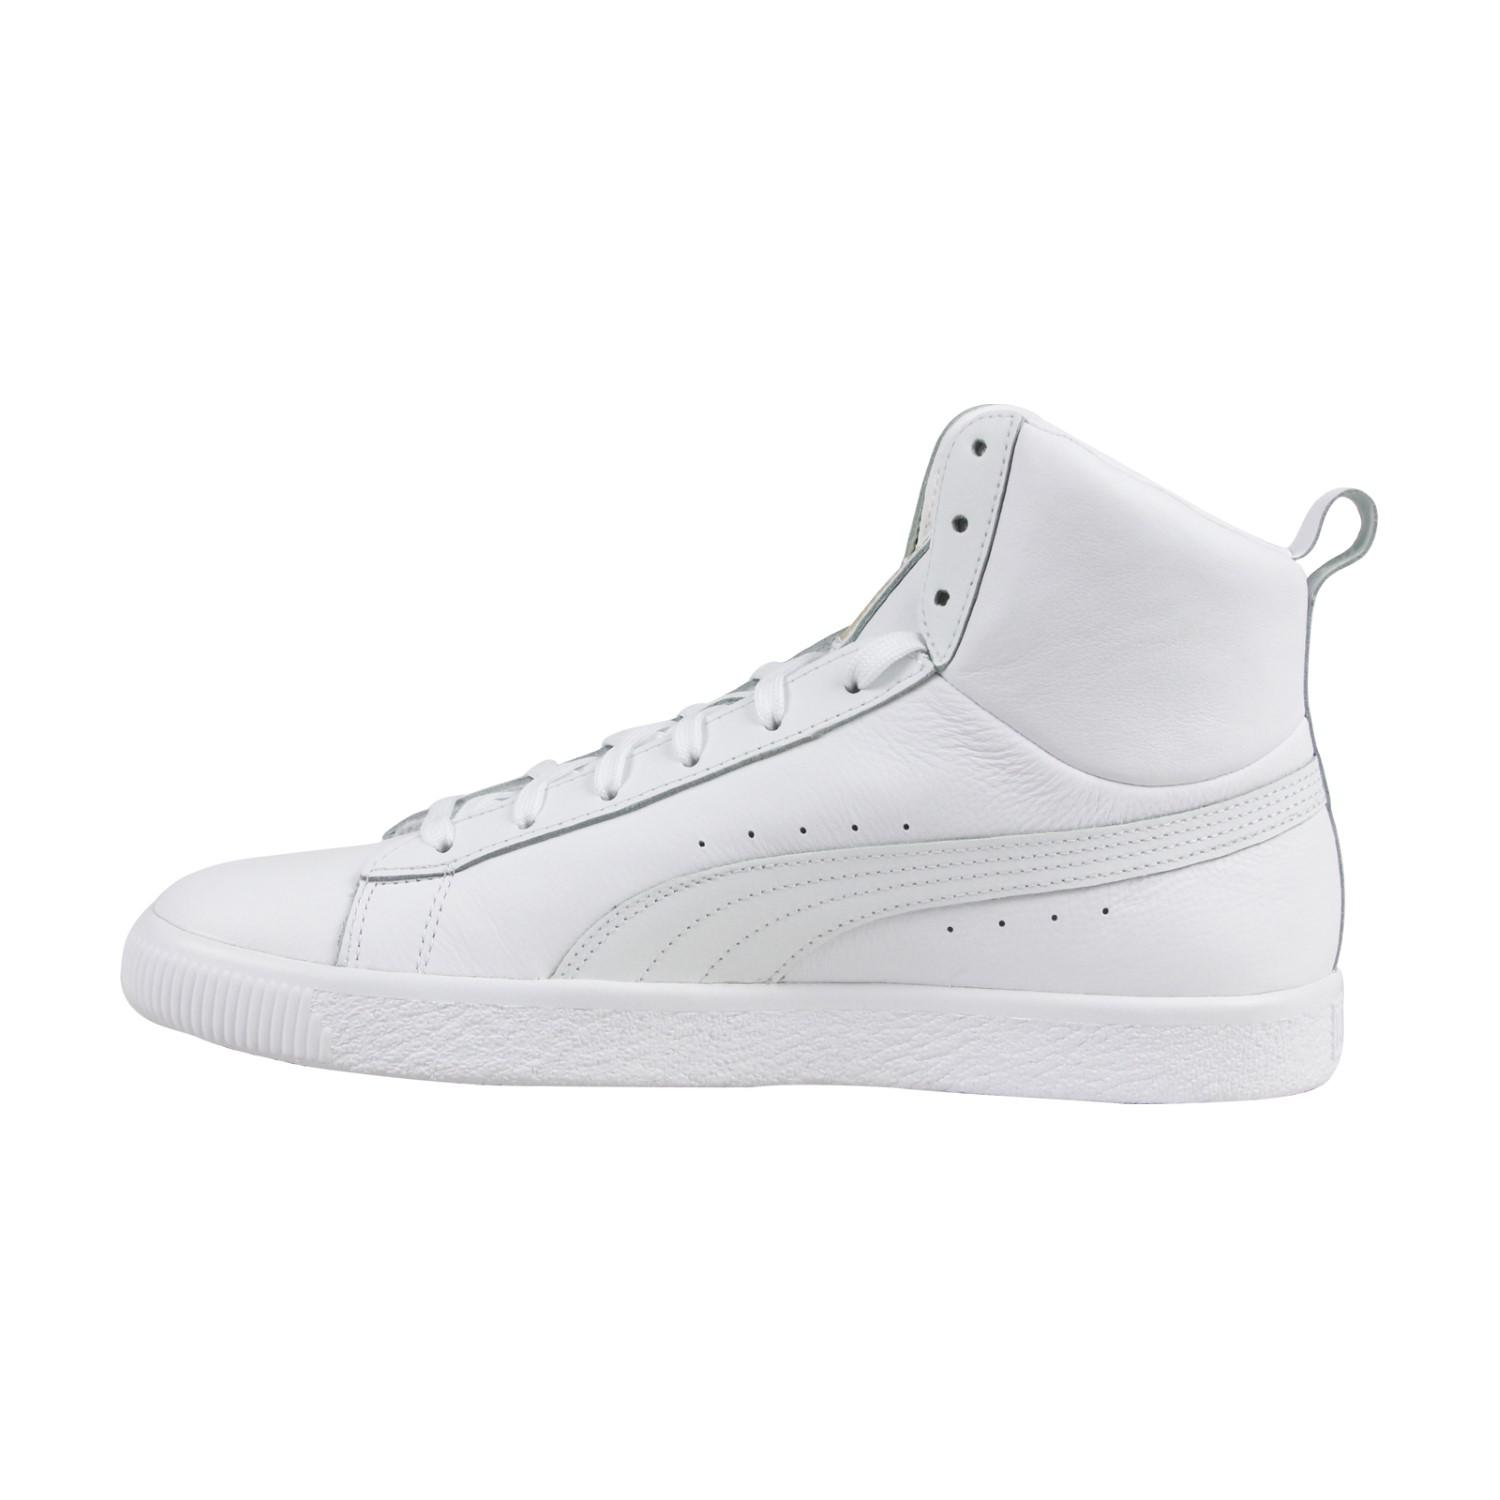 5d32c8230728 Lyst - PUMA Clyde Mid Core Foil White Mens High Top Sneakers in ...